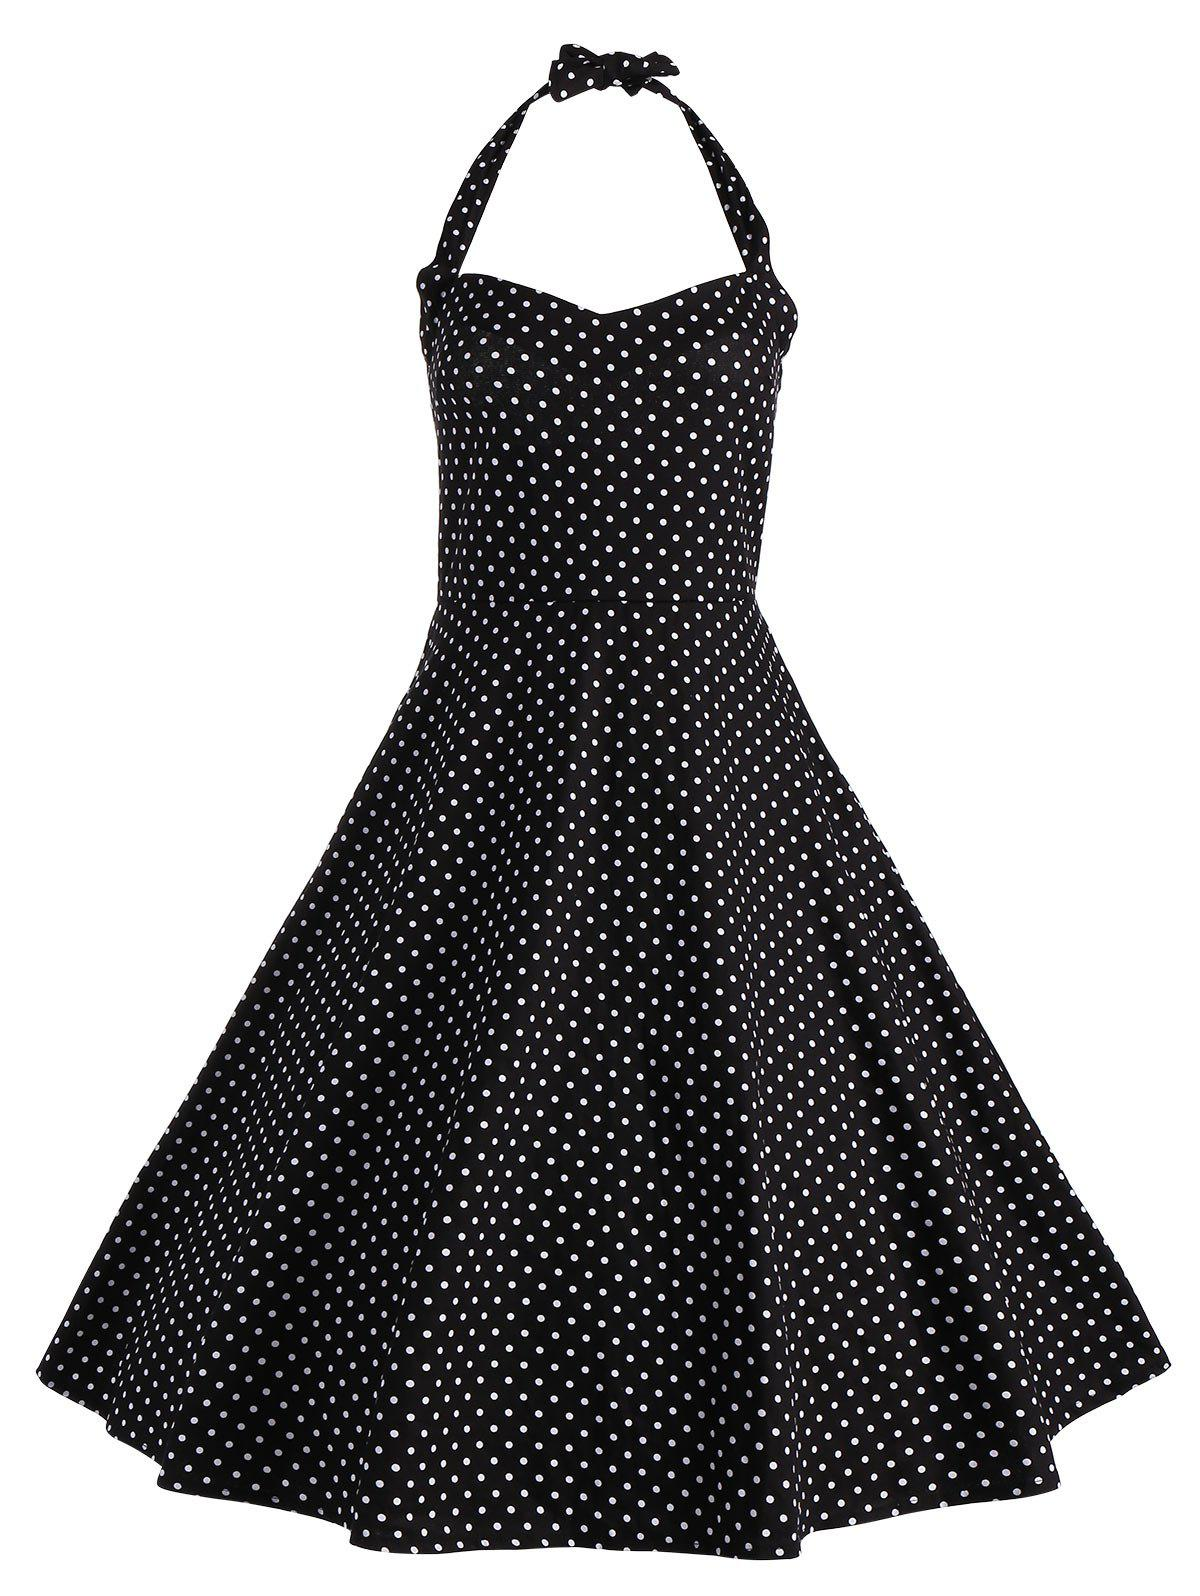 Polka Dot Halter Vintage Plus Size Dress - BLACK 2XL